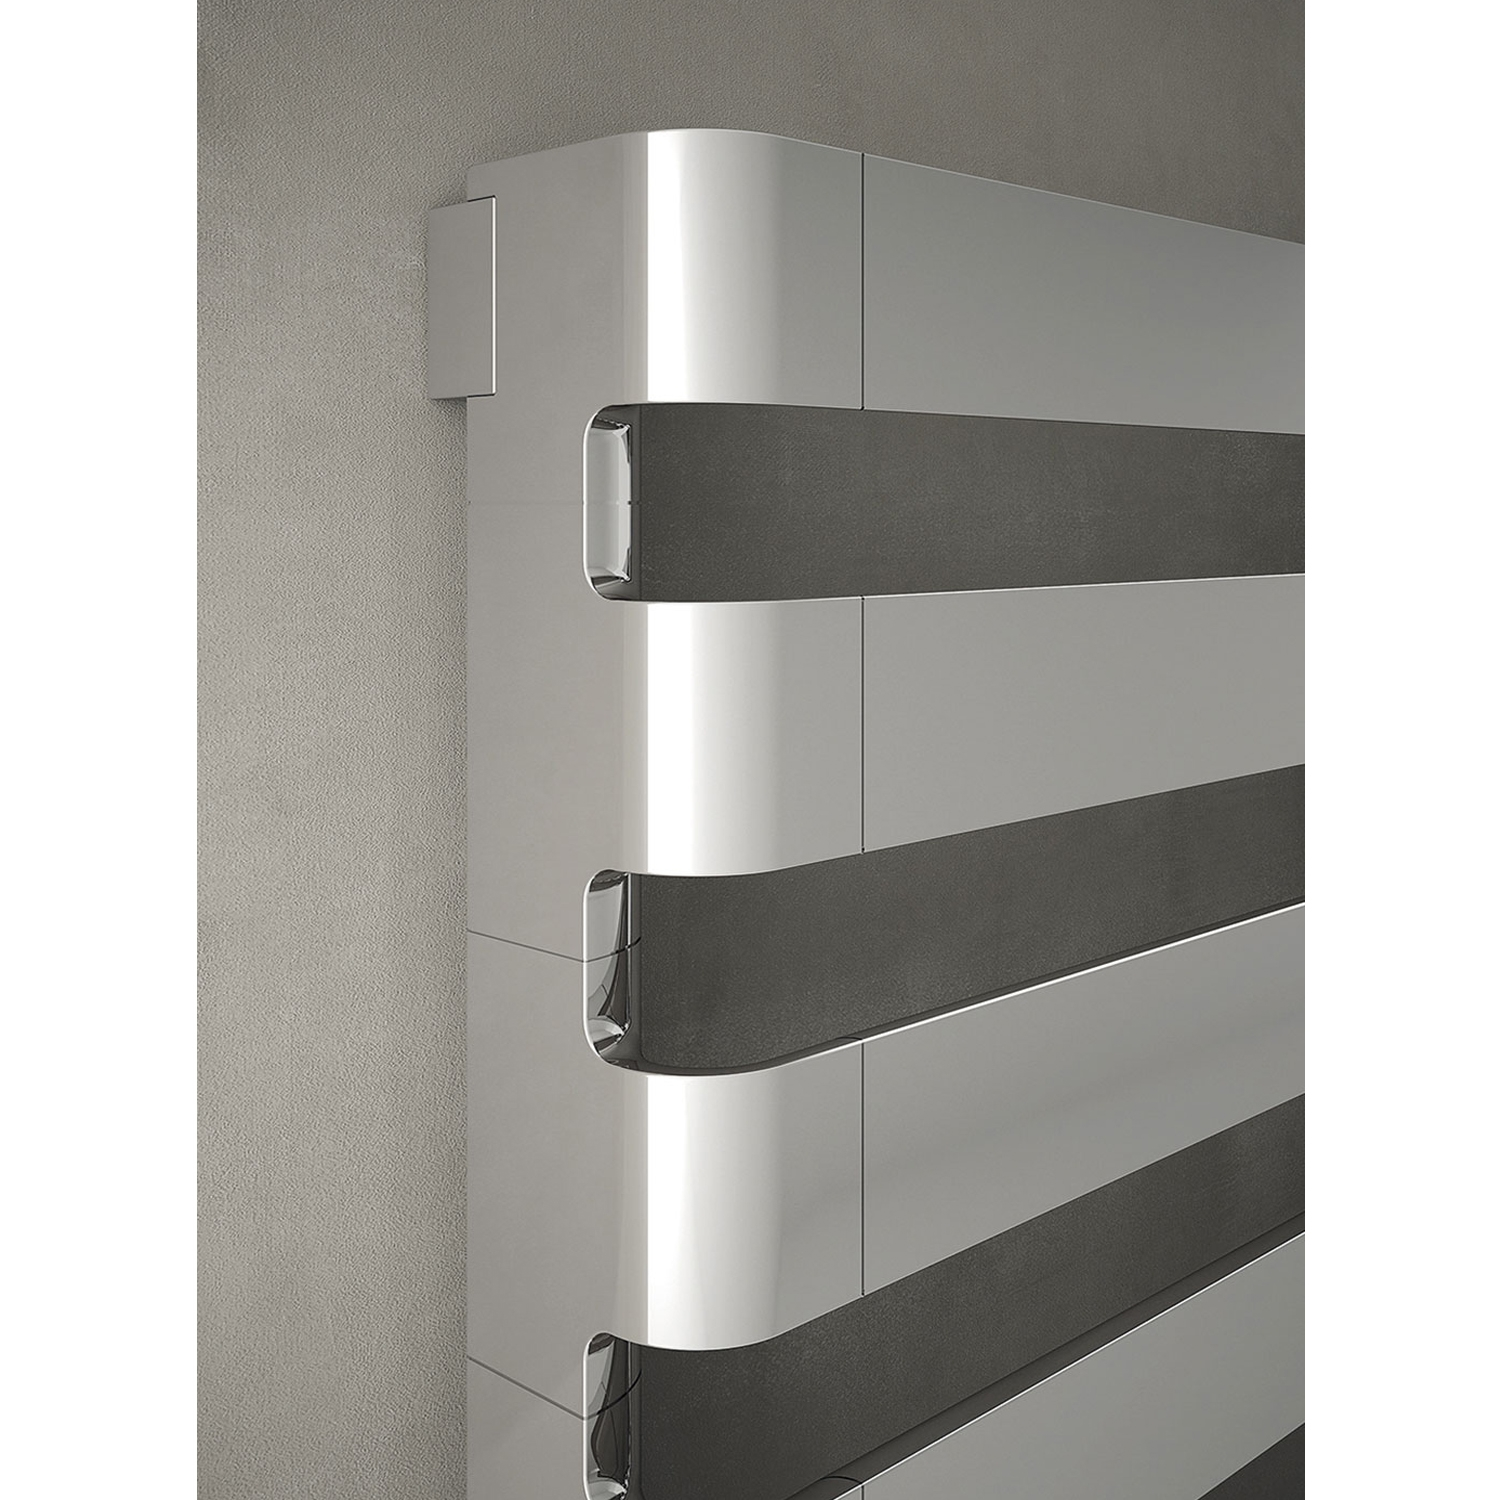 TRC BDO Step Heated Towel Rail 430mm H x 1500mm W - Chrome